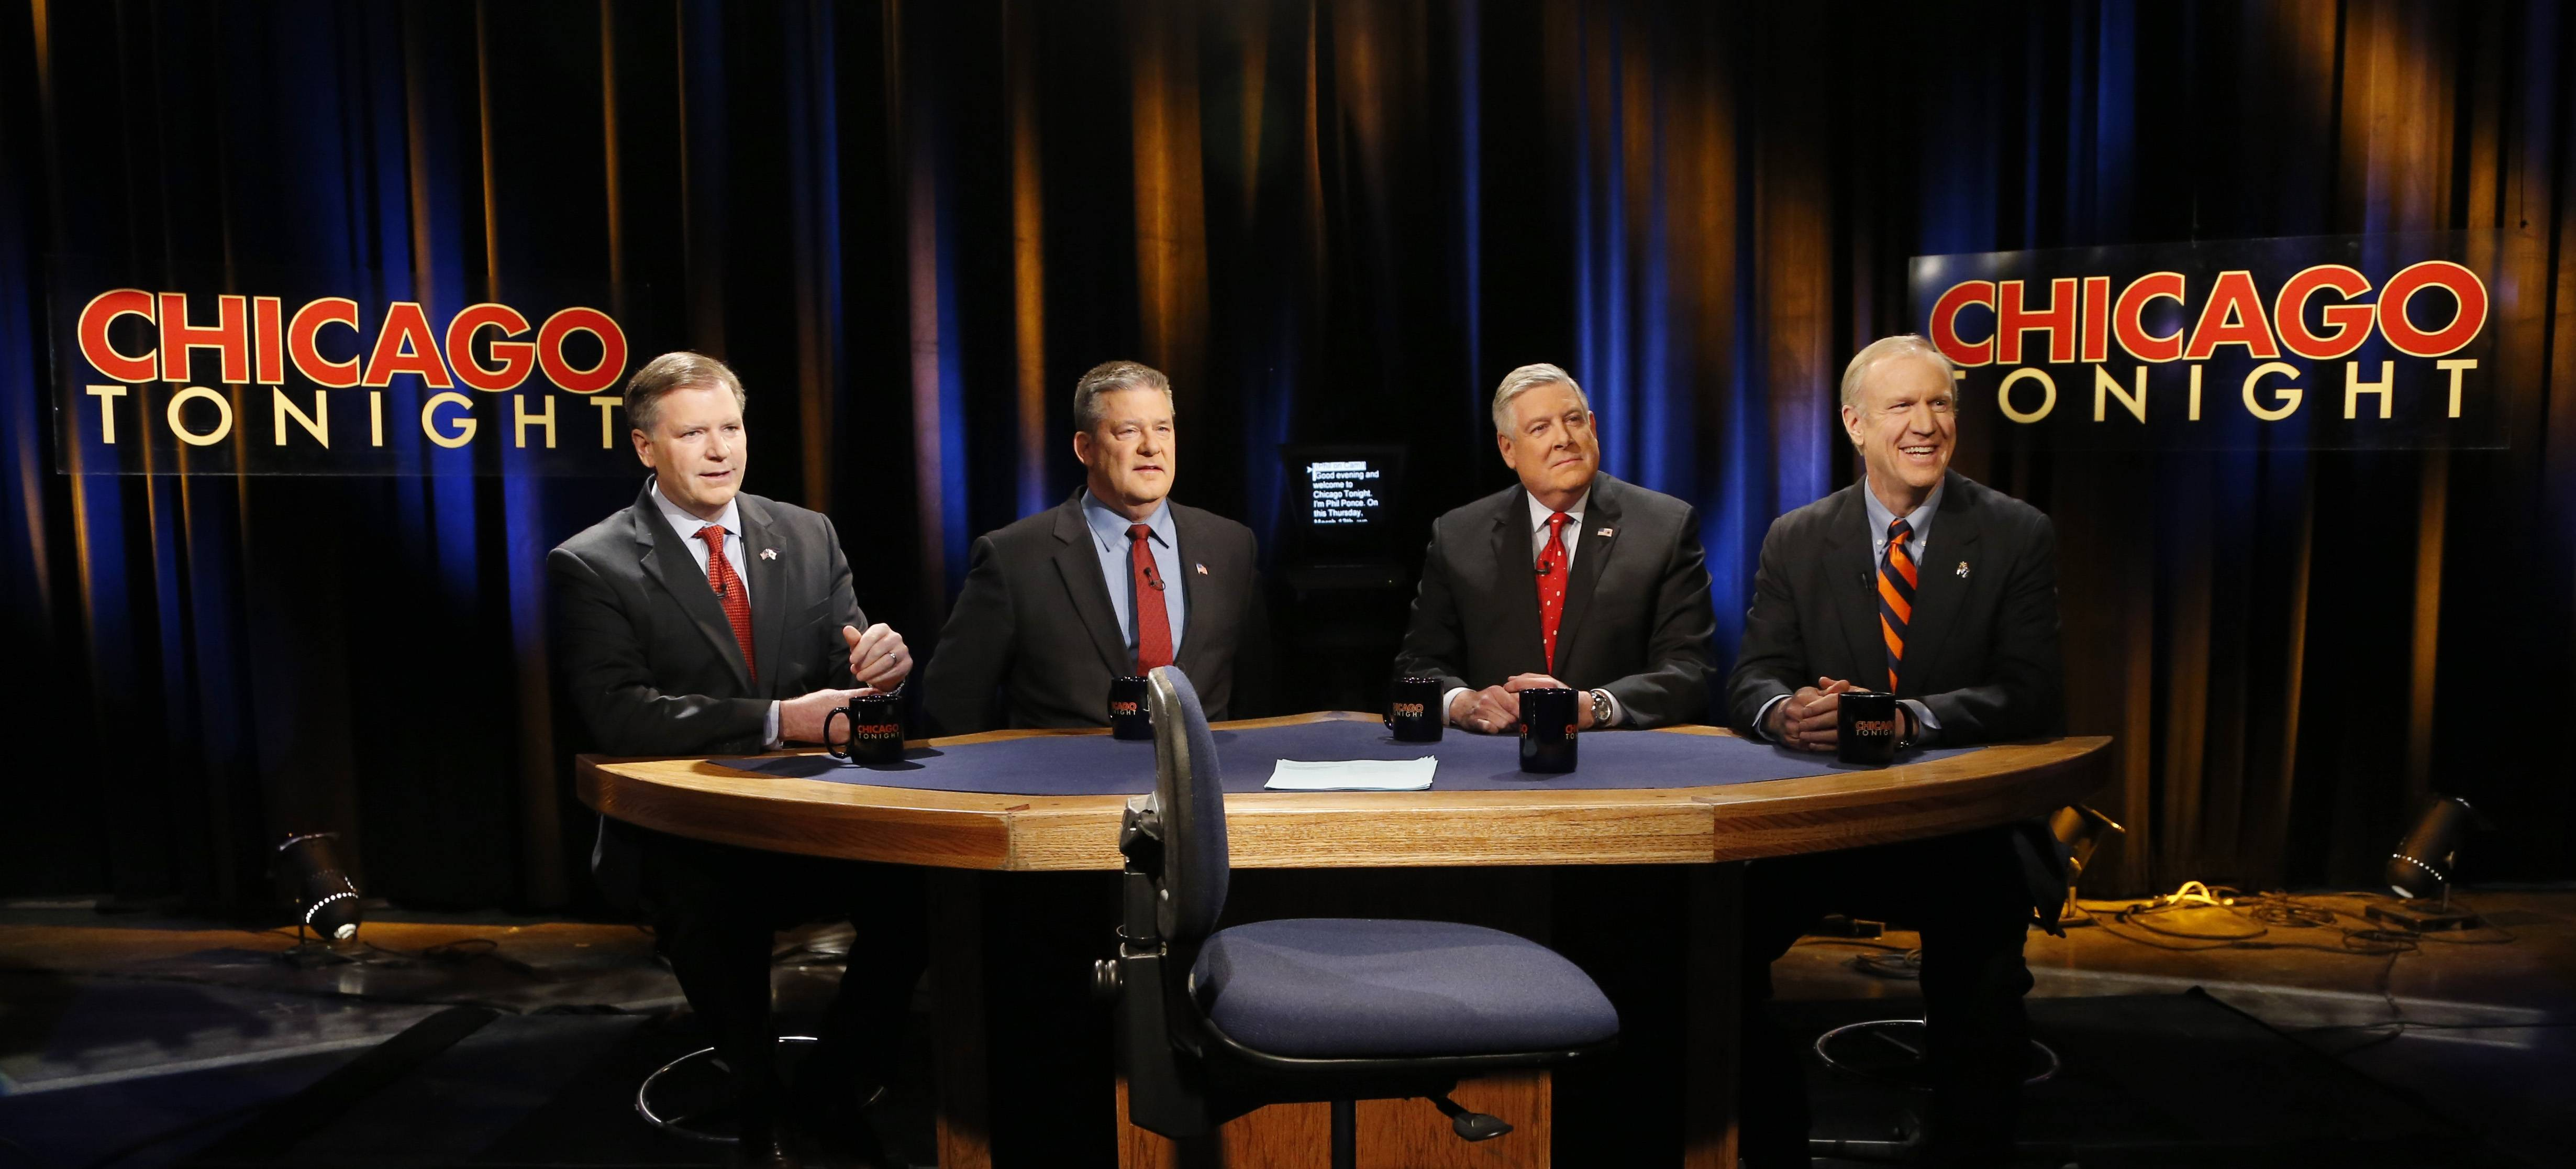 Republican gubernatorial primary candidates from left, state Sen. Bill Brady, state Treasurer Dan Rutherford, state Sen. Kirk Dillard and Bruce Rauner, prepare for their last televised debate Thursday before next week's primary in Chicago.